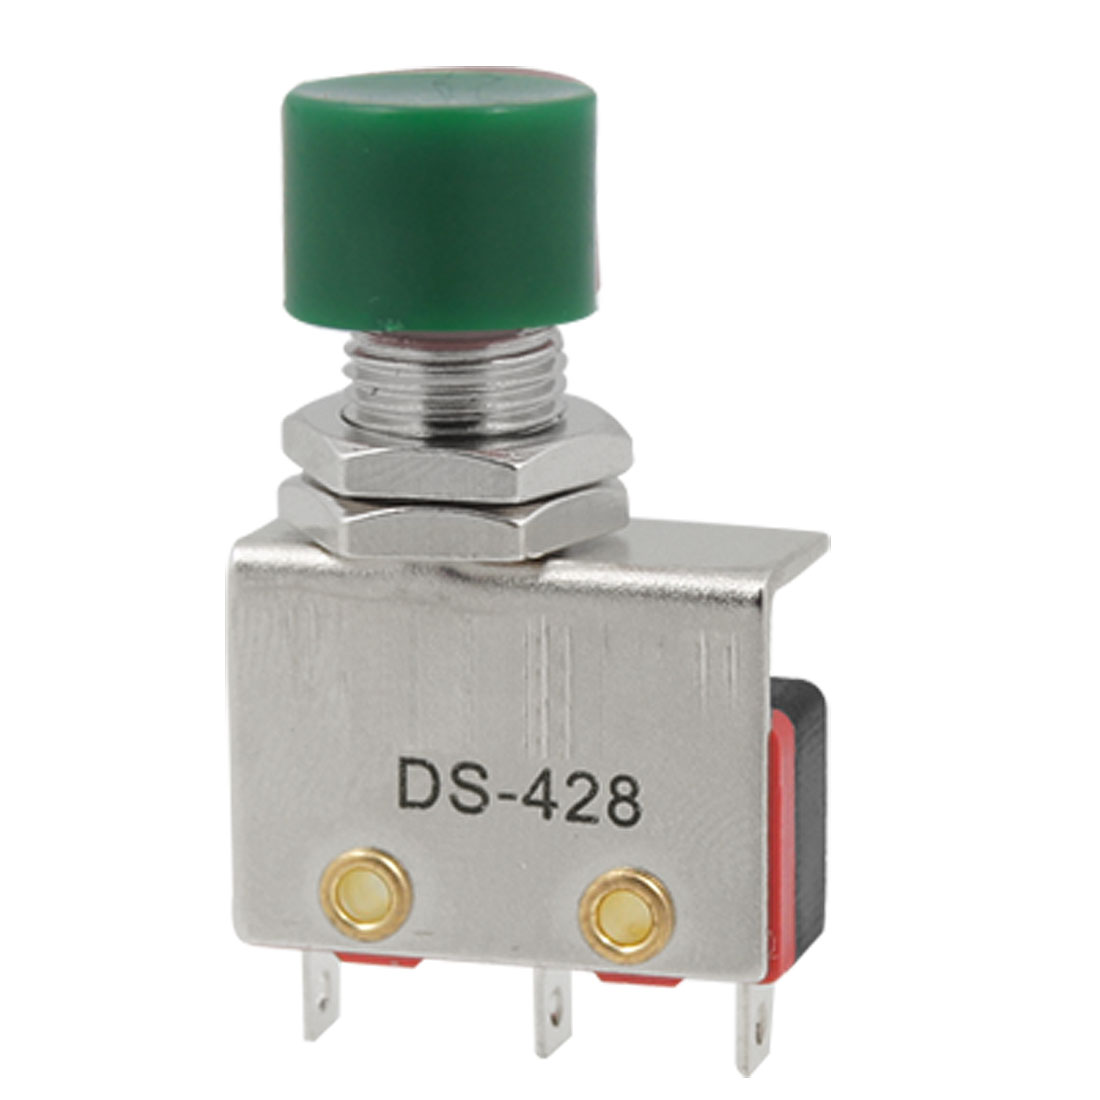 DS428 220V 10A SPDT Momentary Green Push Button Micro Limit Switch DS428